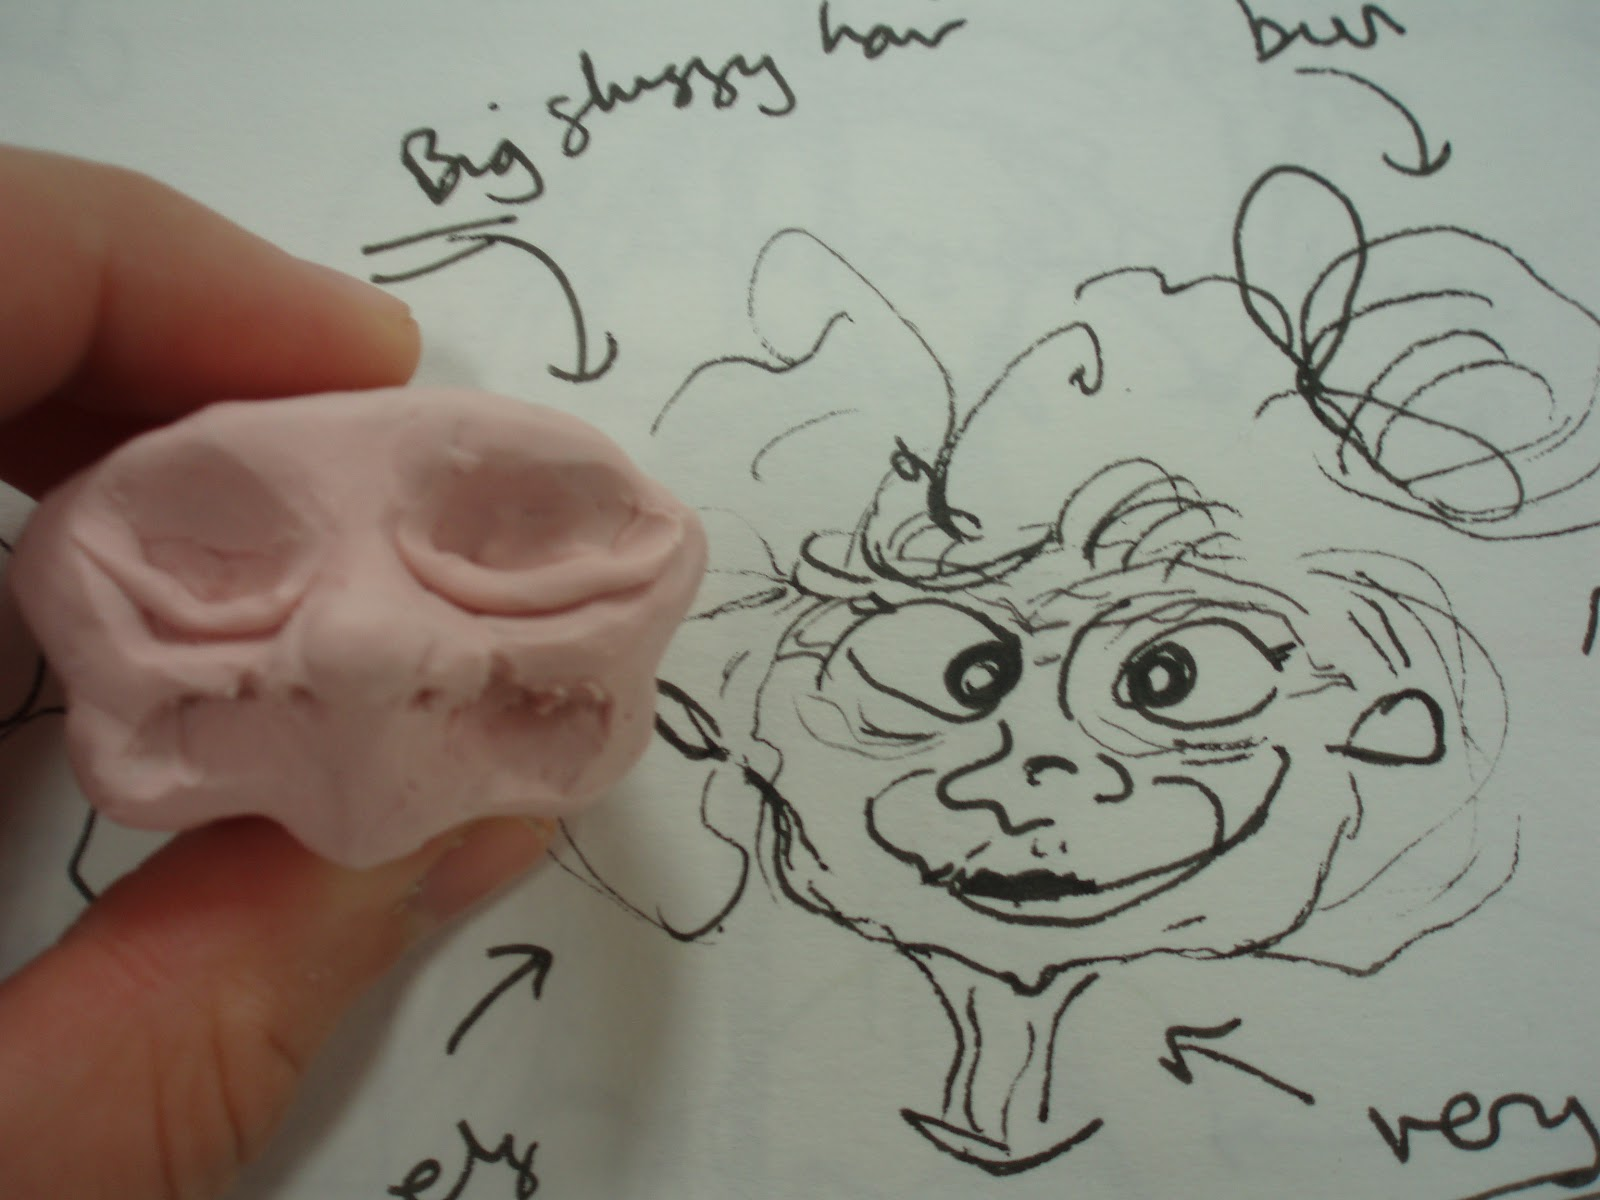 Character Design Ebook : Poppy rand illustration rough plasticine character design